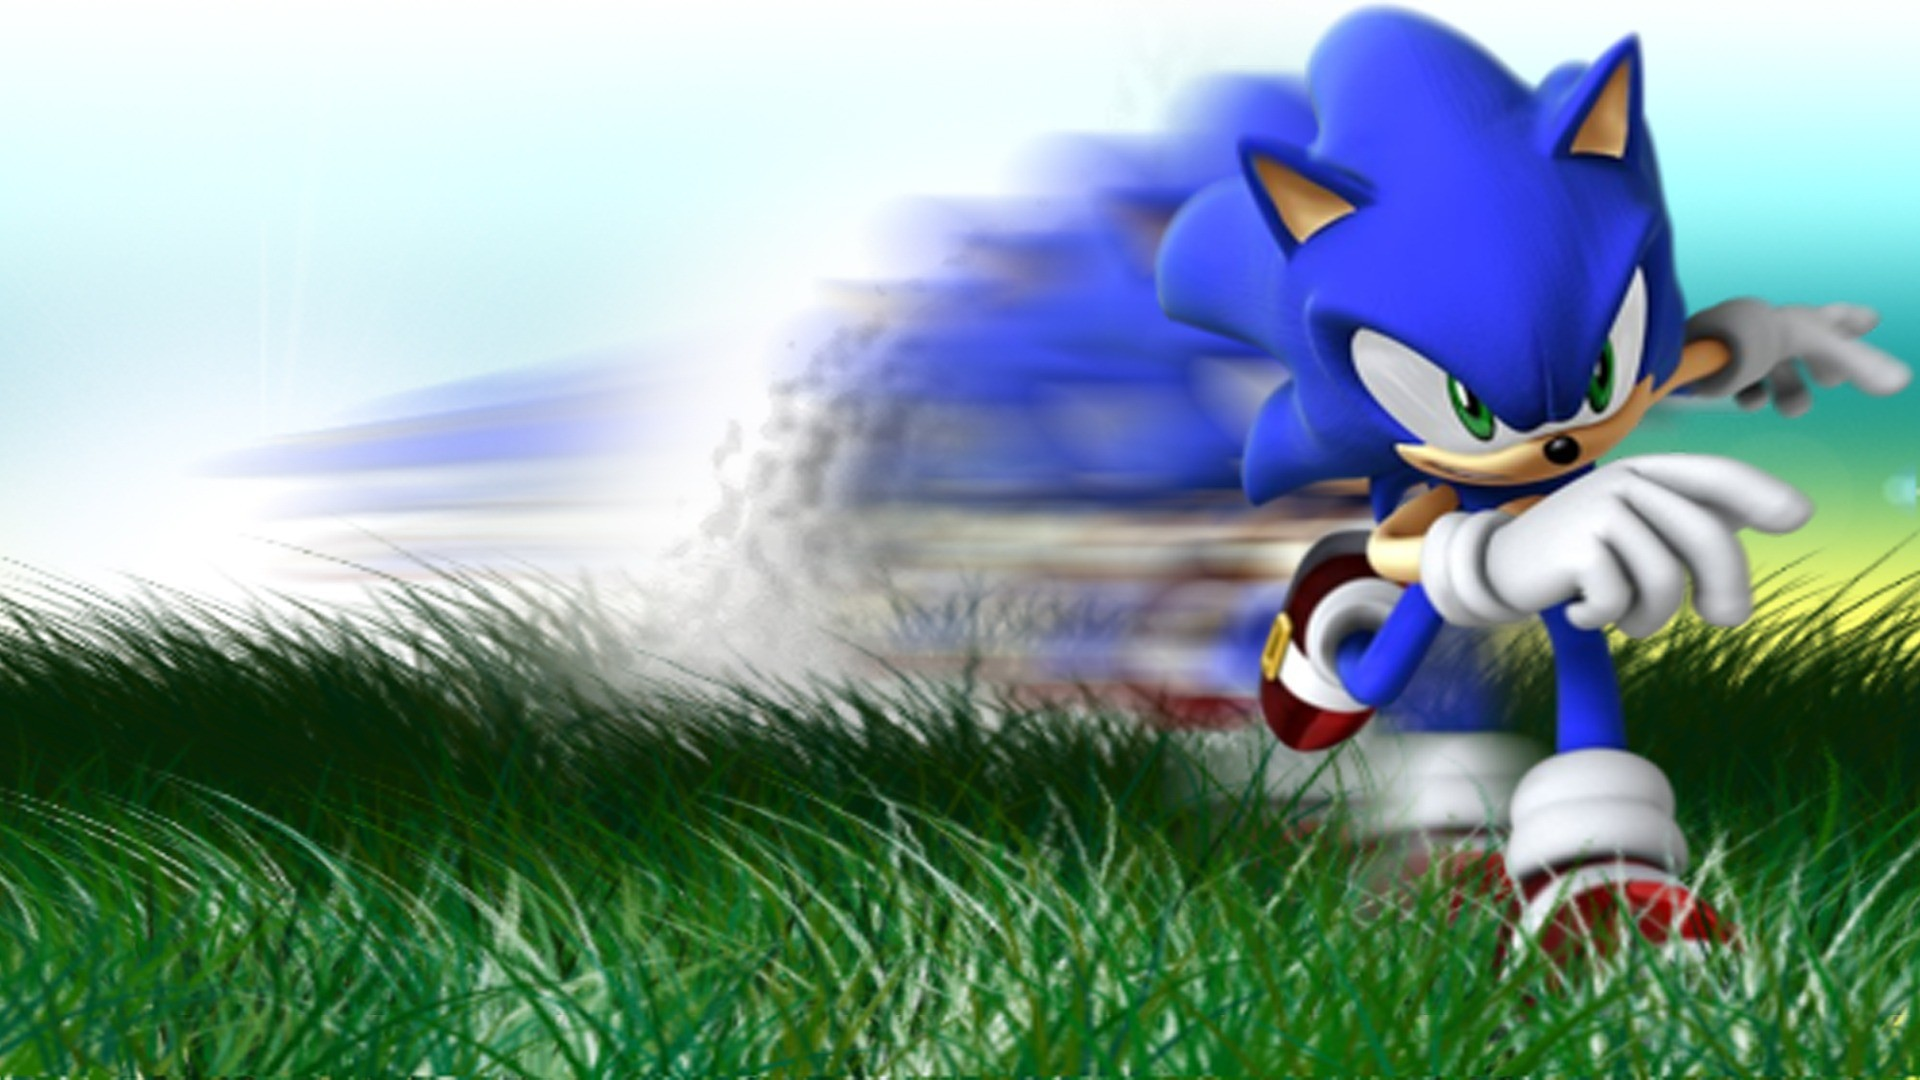 1920x1080 Sonic Wallpaper Cartoons Anime Animated